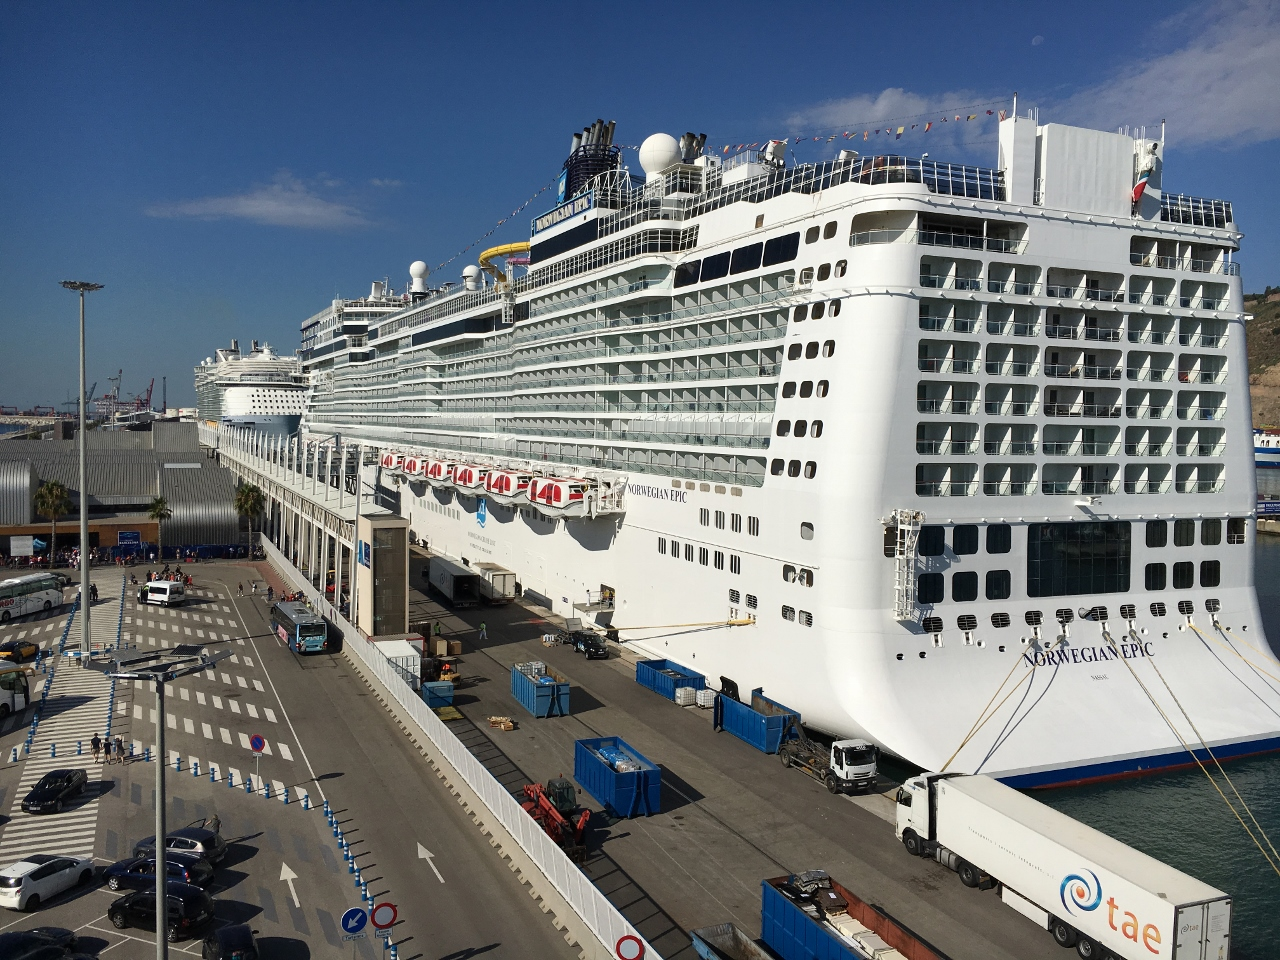 Norwegian Epic is one of the largest ships in the fleet and caters to over 4,000 guests at a time.